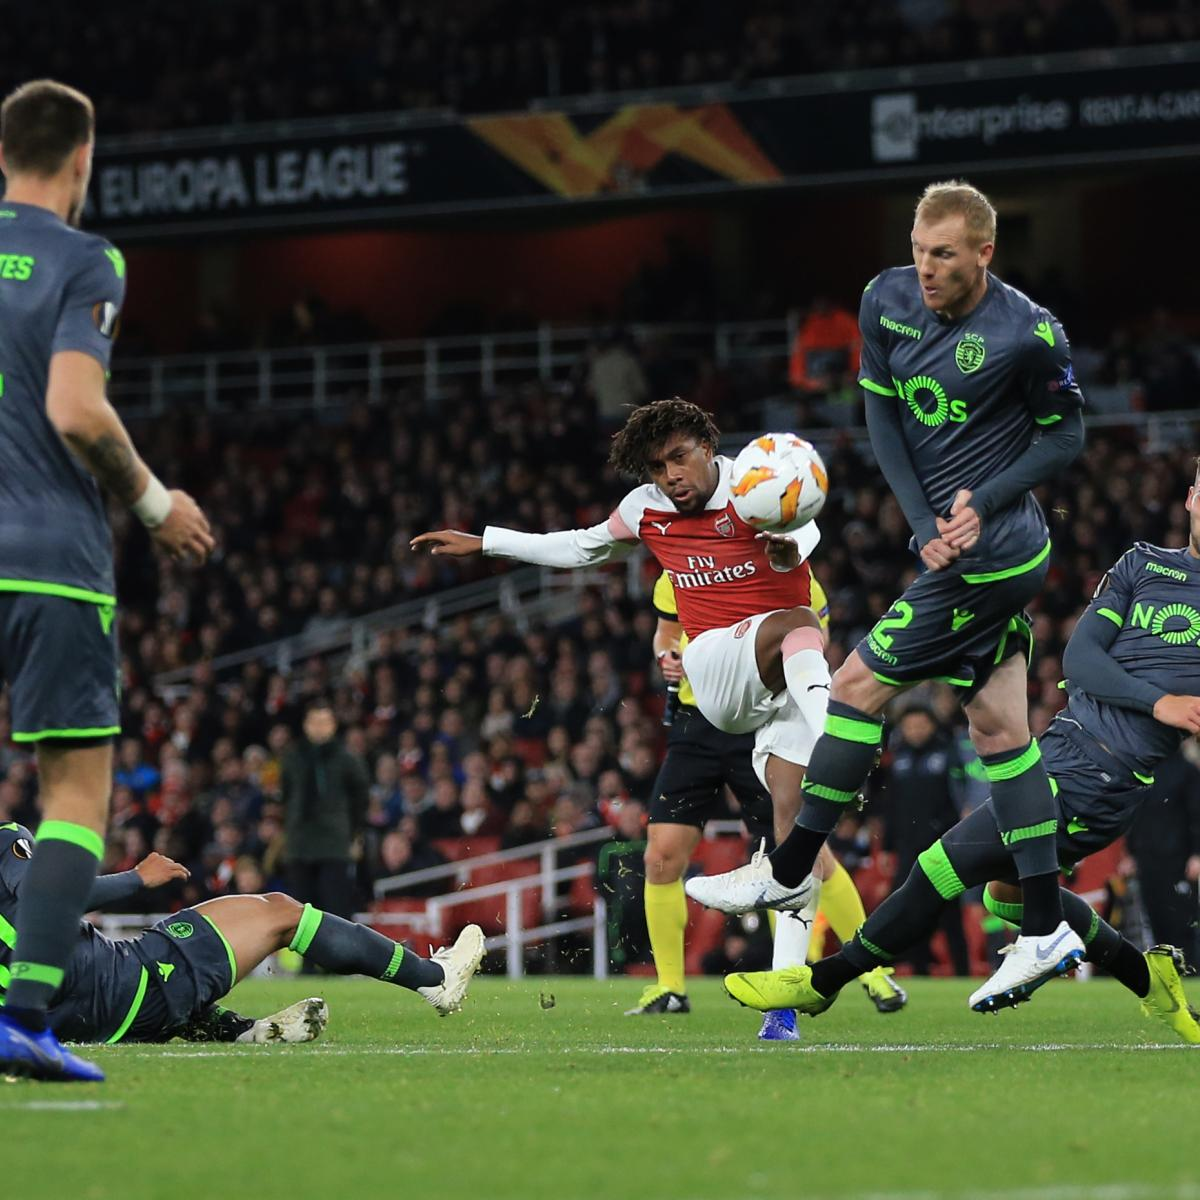 Arsenal Qualify for Europa League Knockout Stage with Draw vs. Sporting